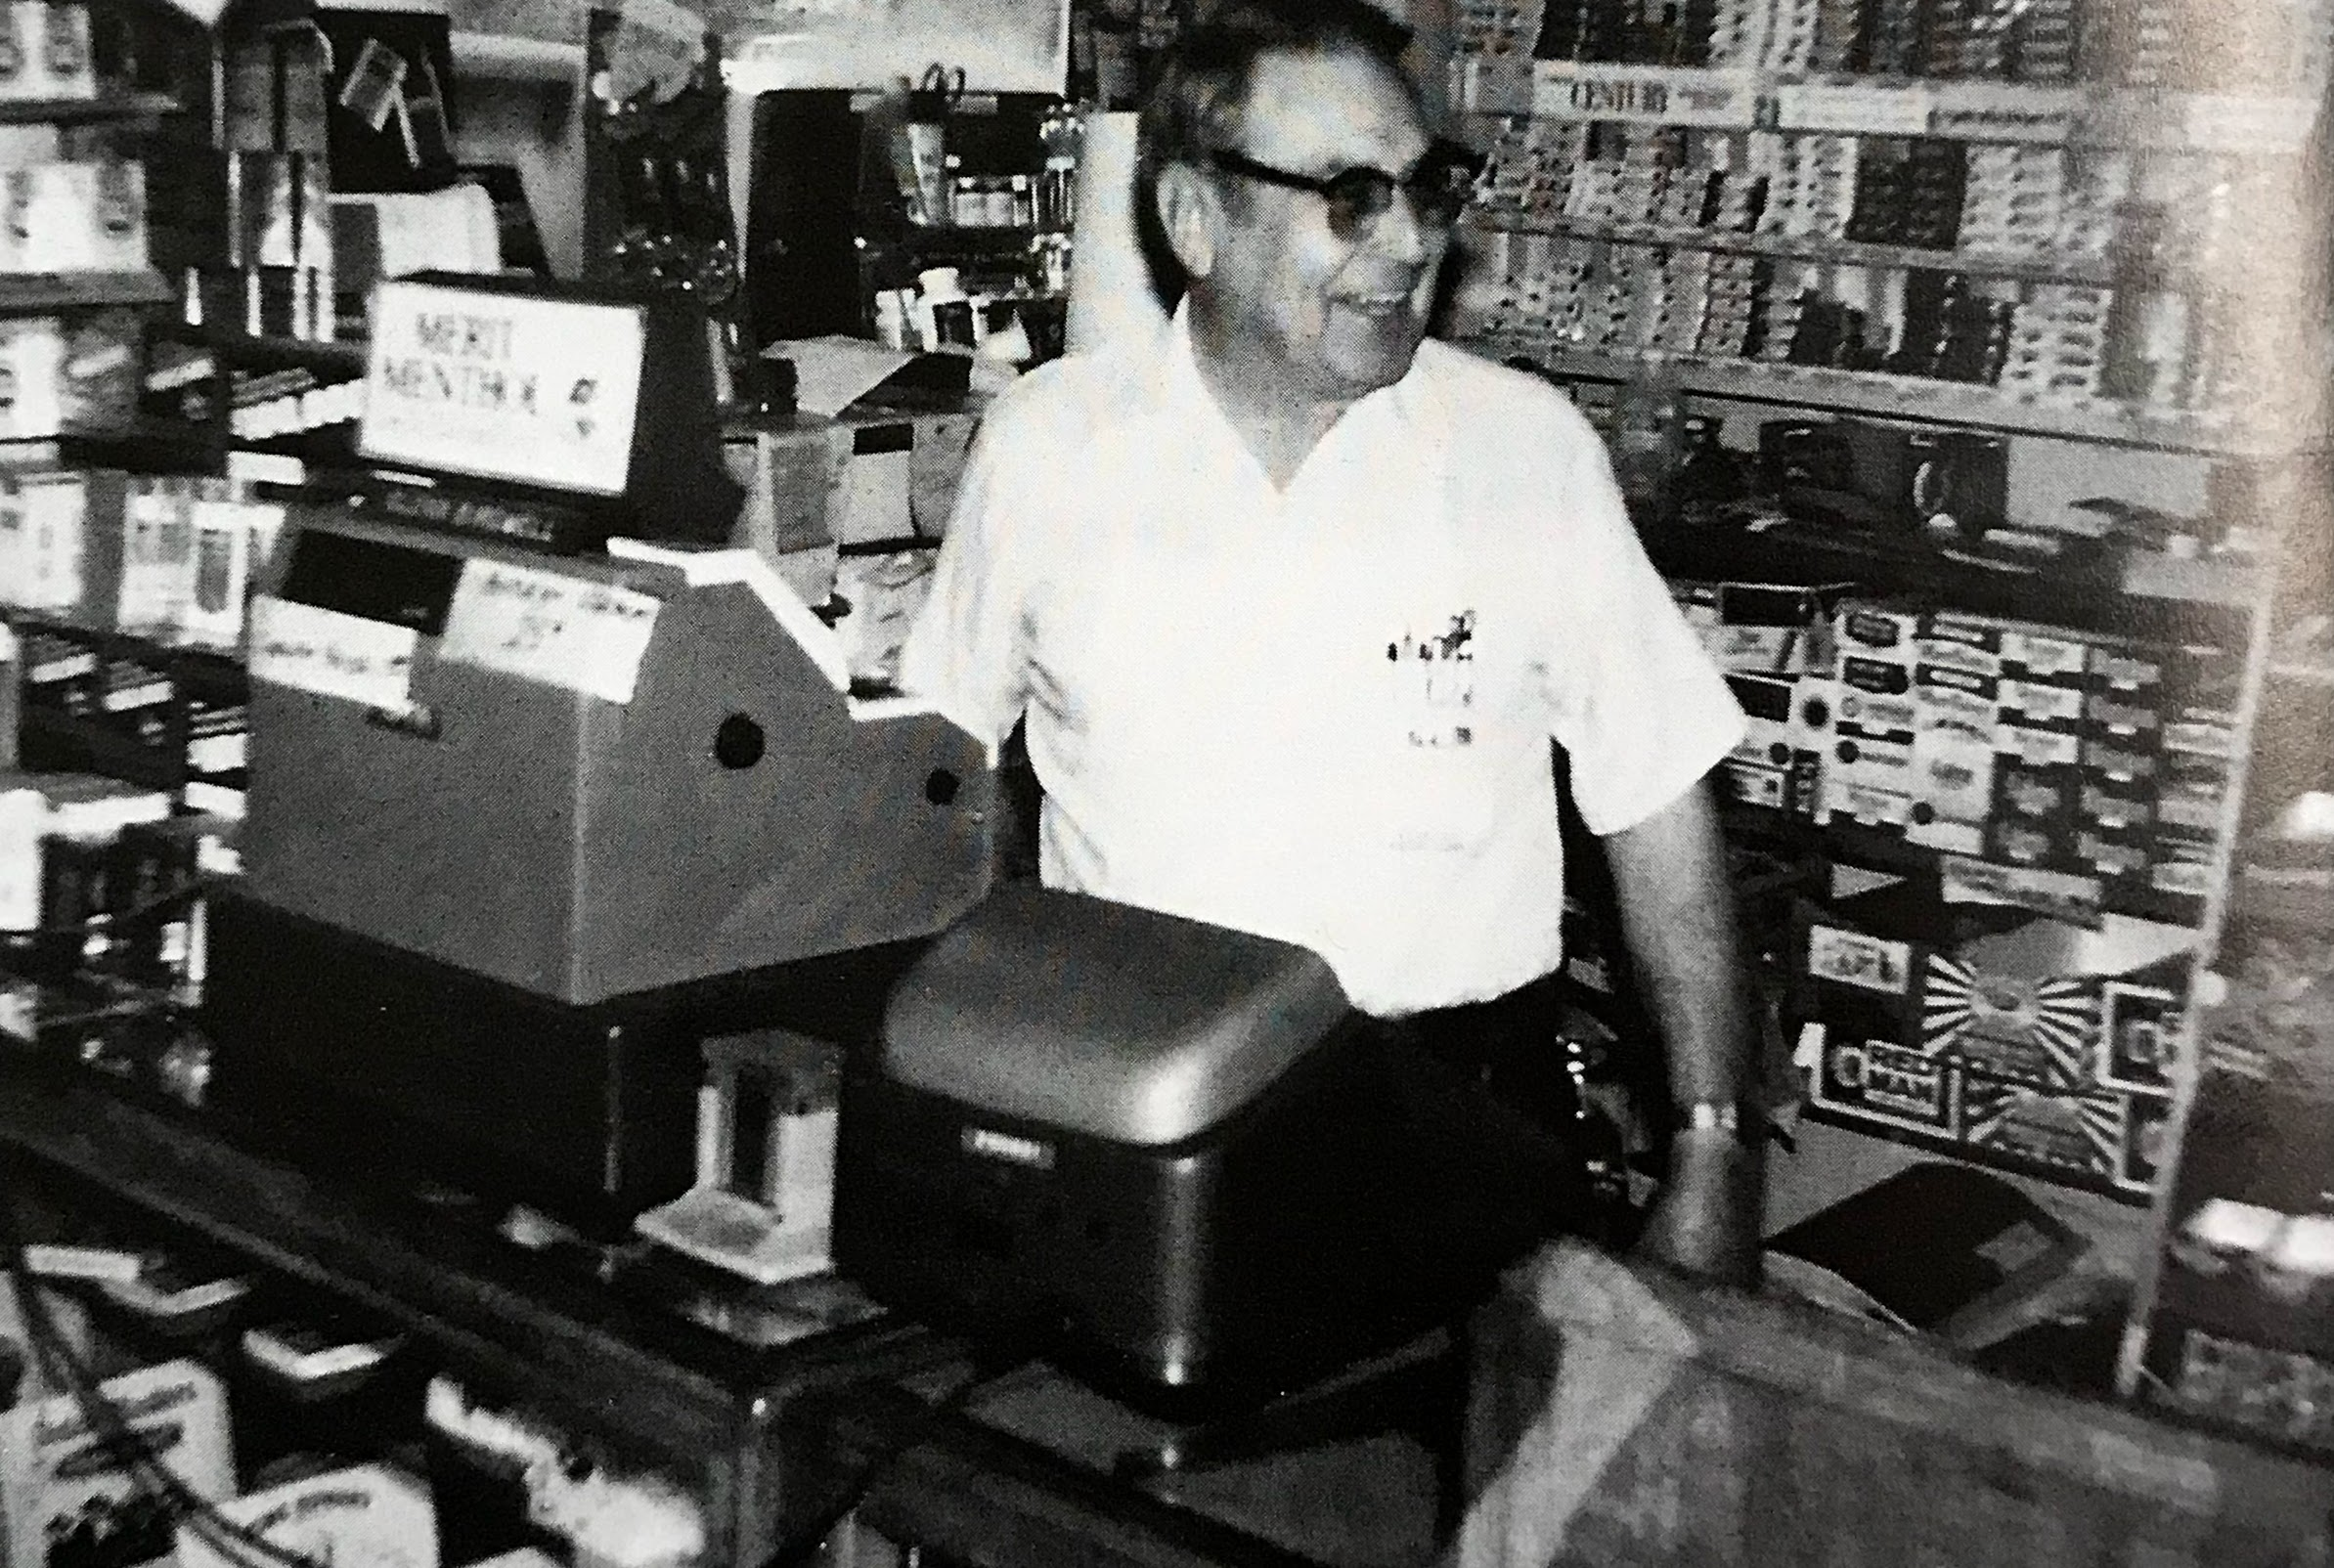 Mr. Birdwell pictured standing behind the counter